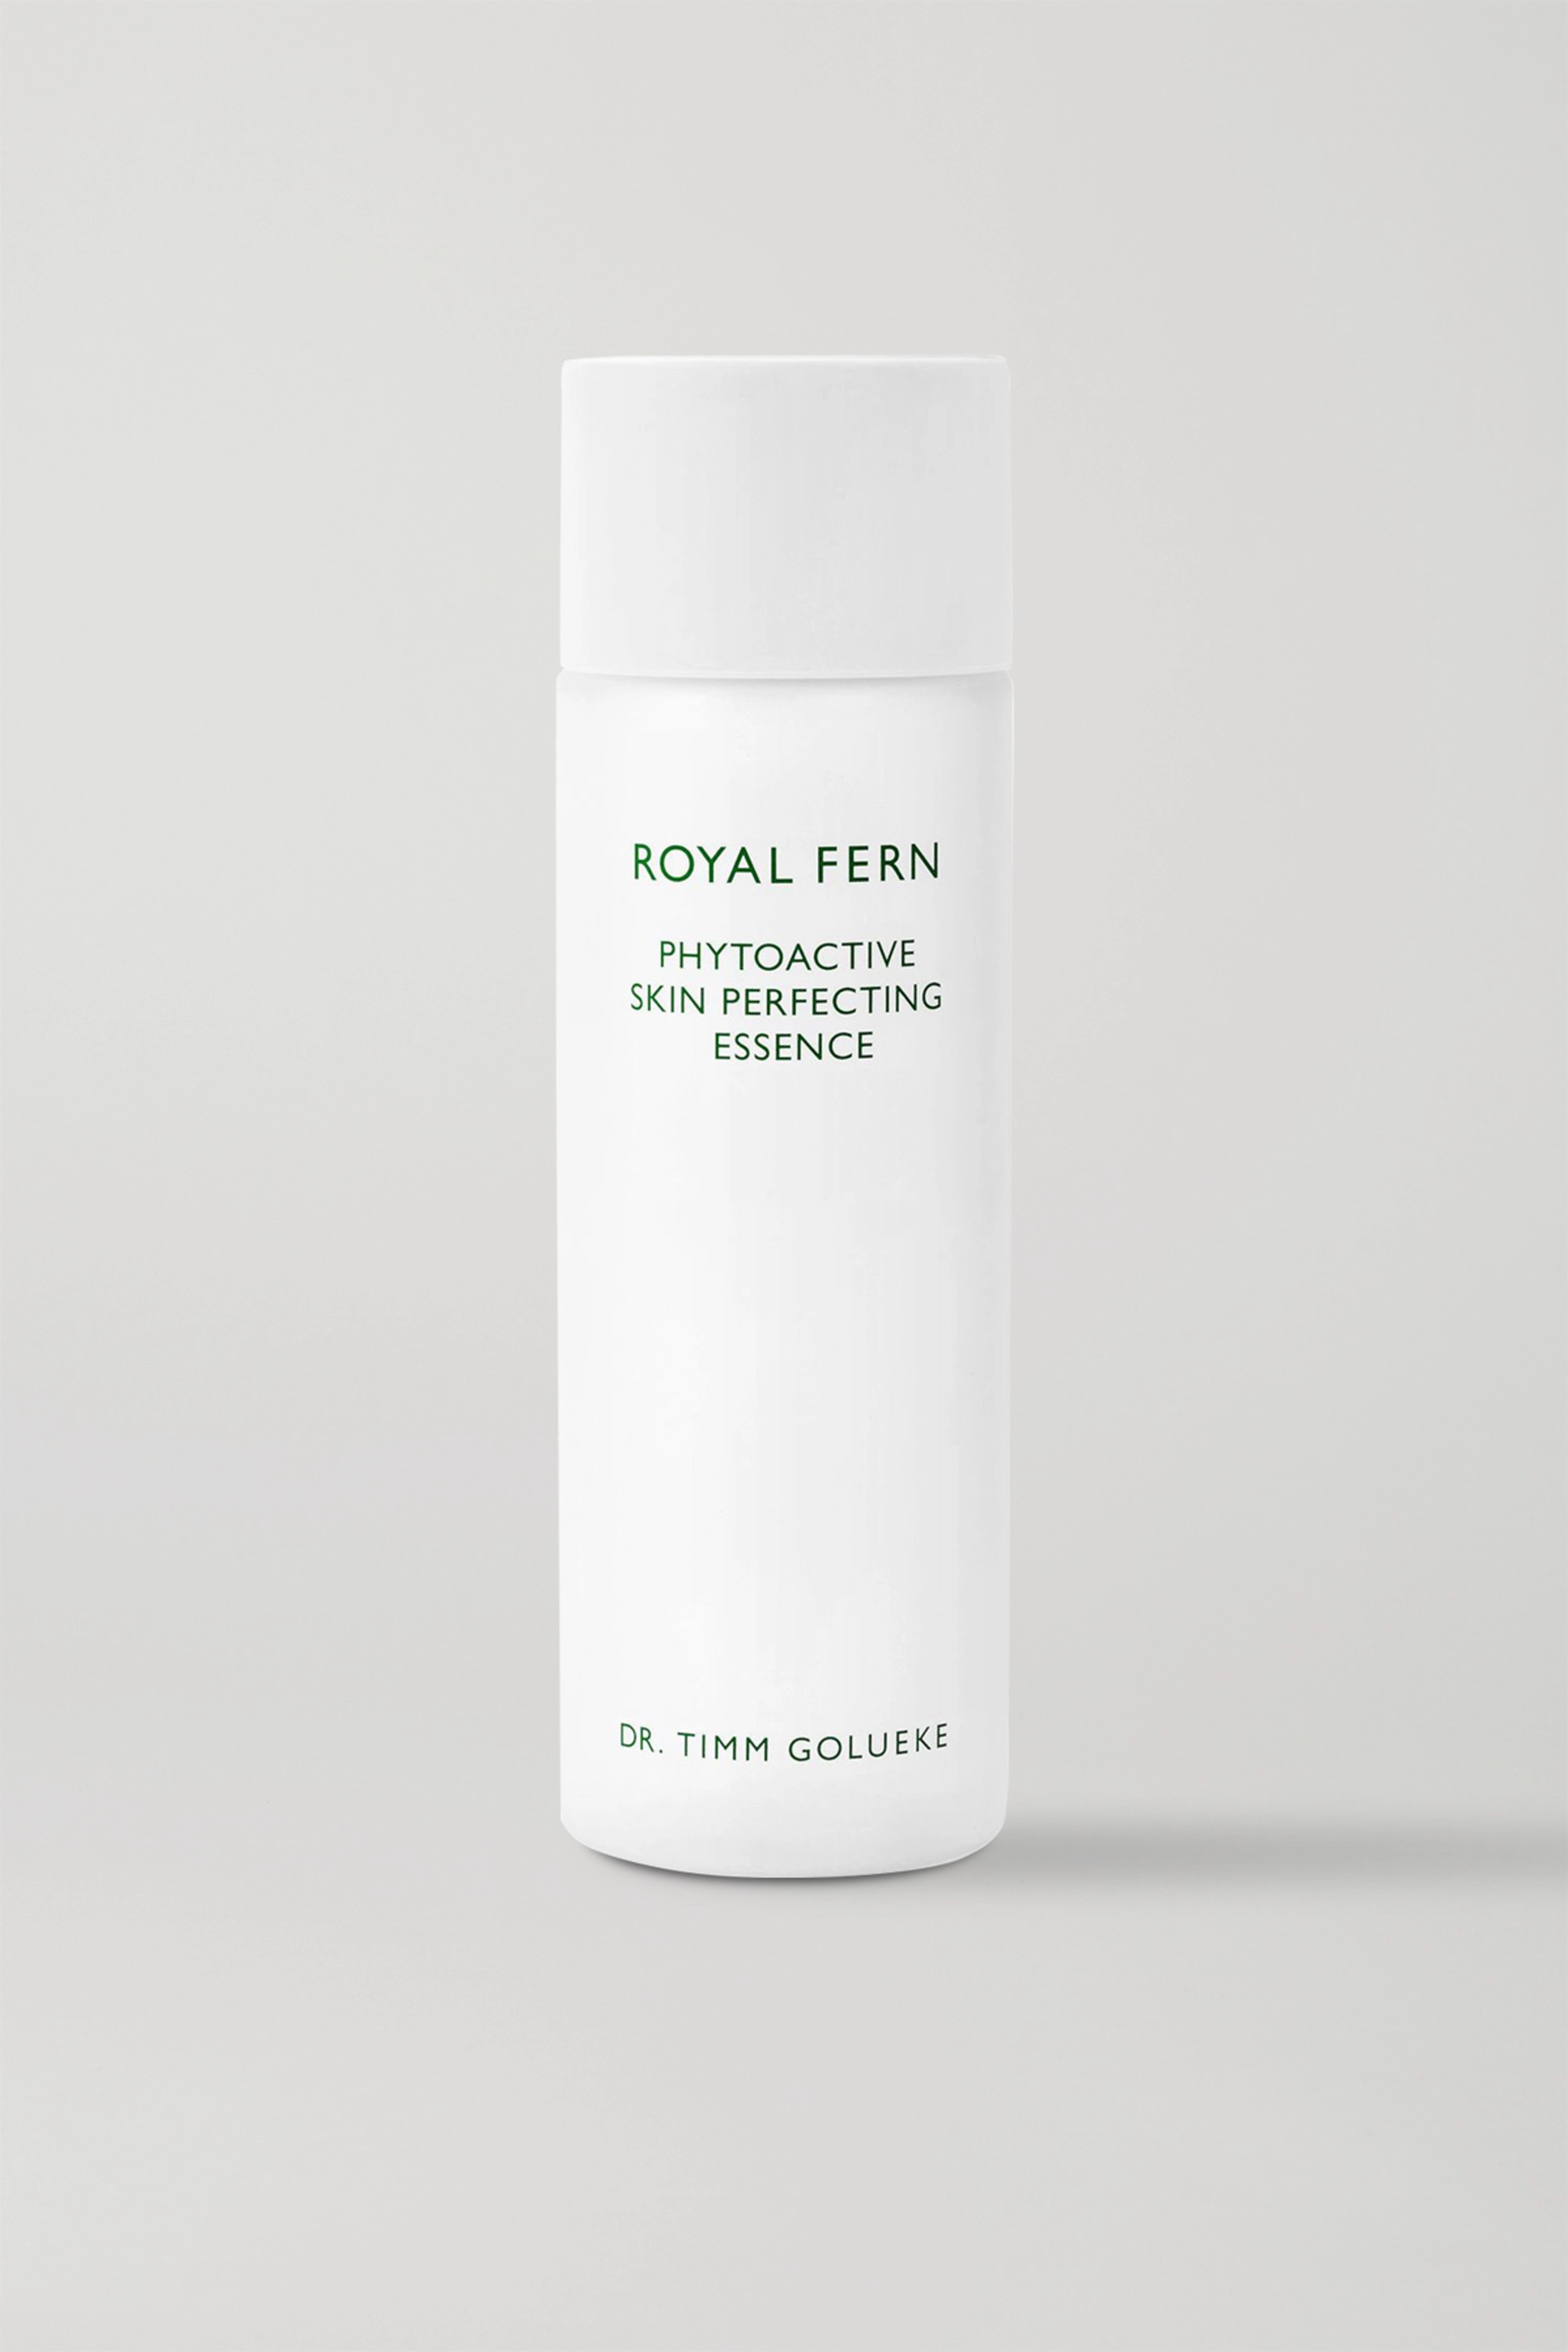 Royal Fern Phytoactive Skin Perfecting Essence, 200ml In Colorless